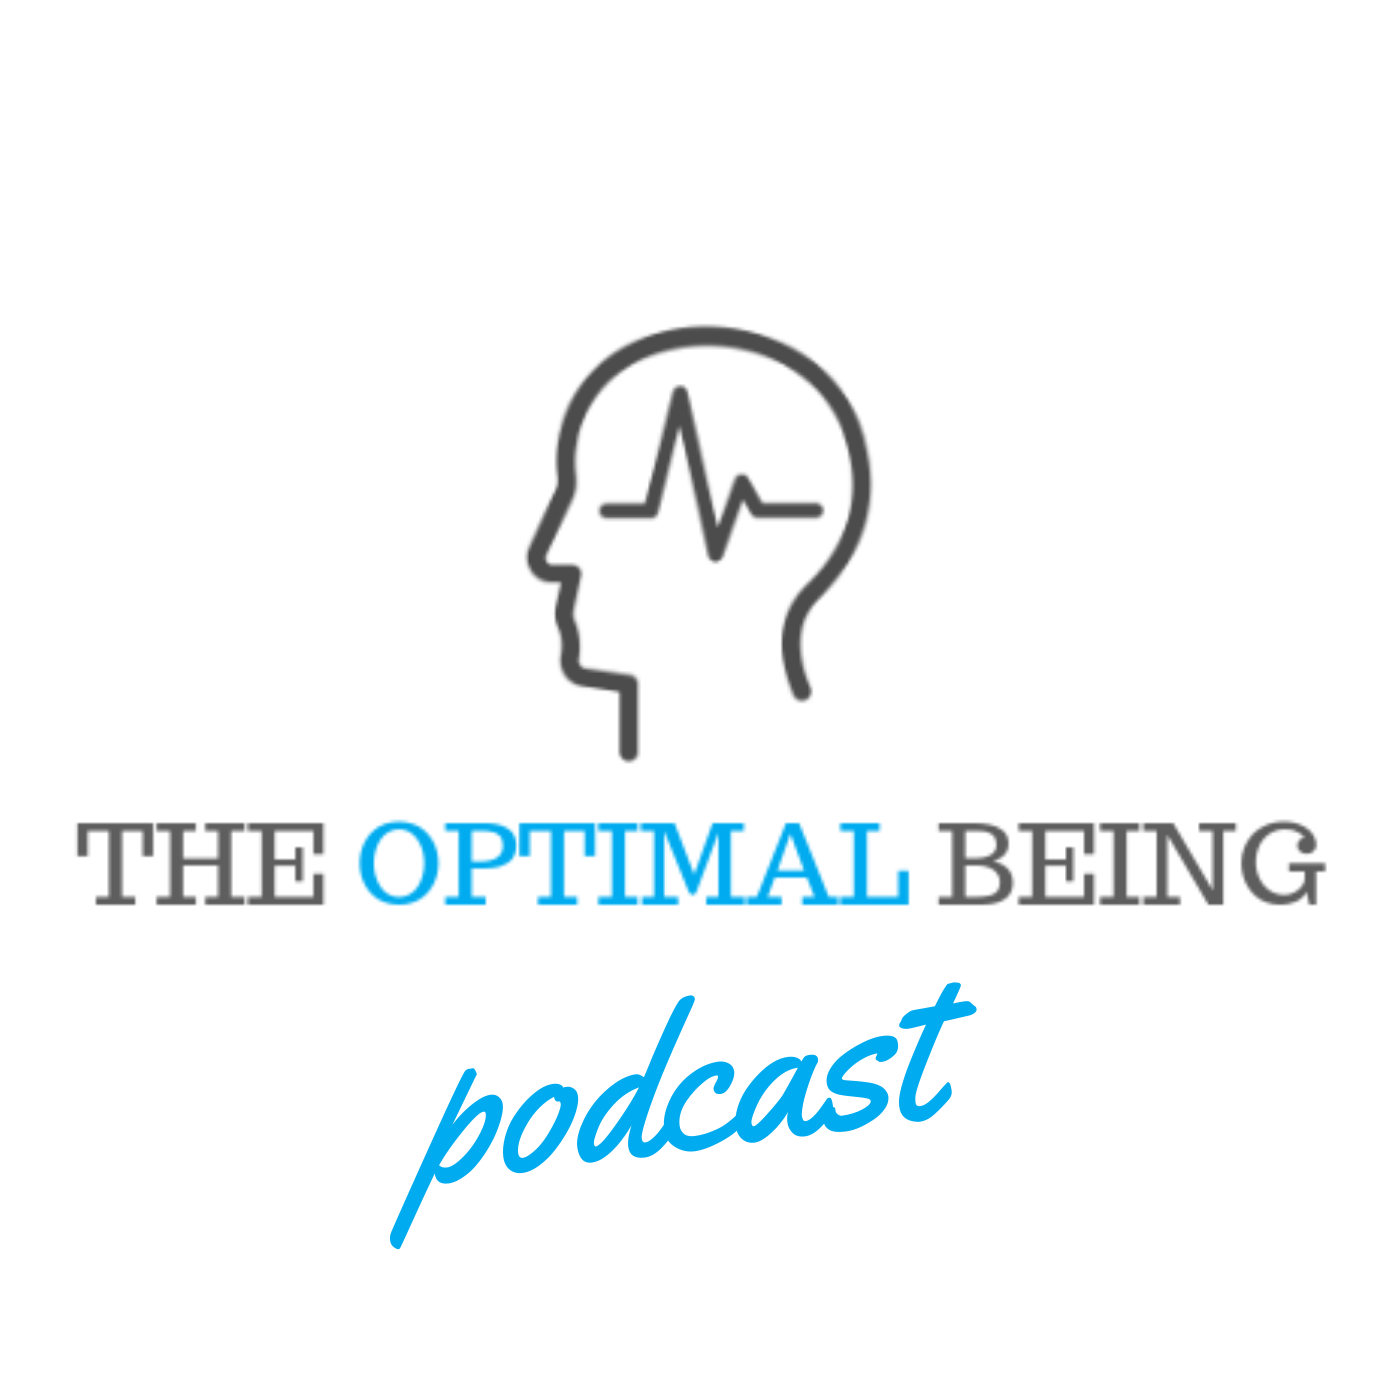 The Optimal Being Podcast